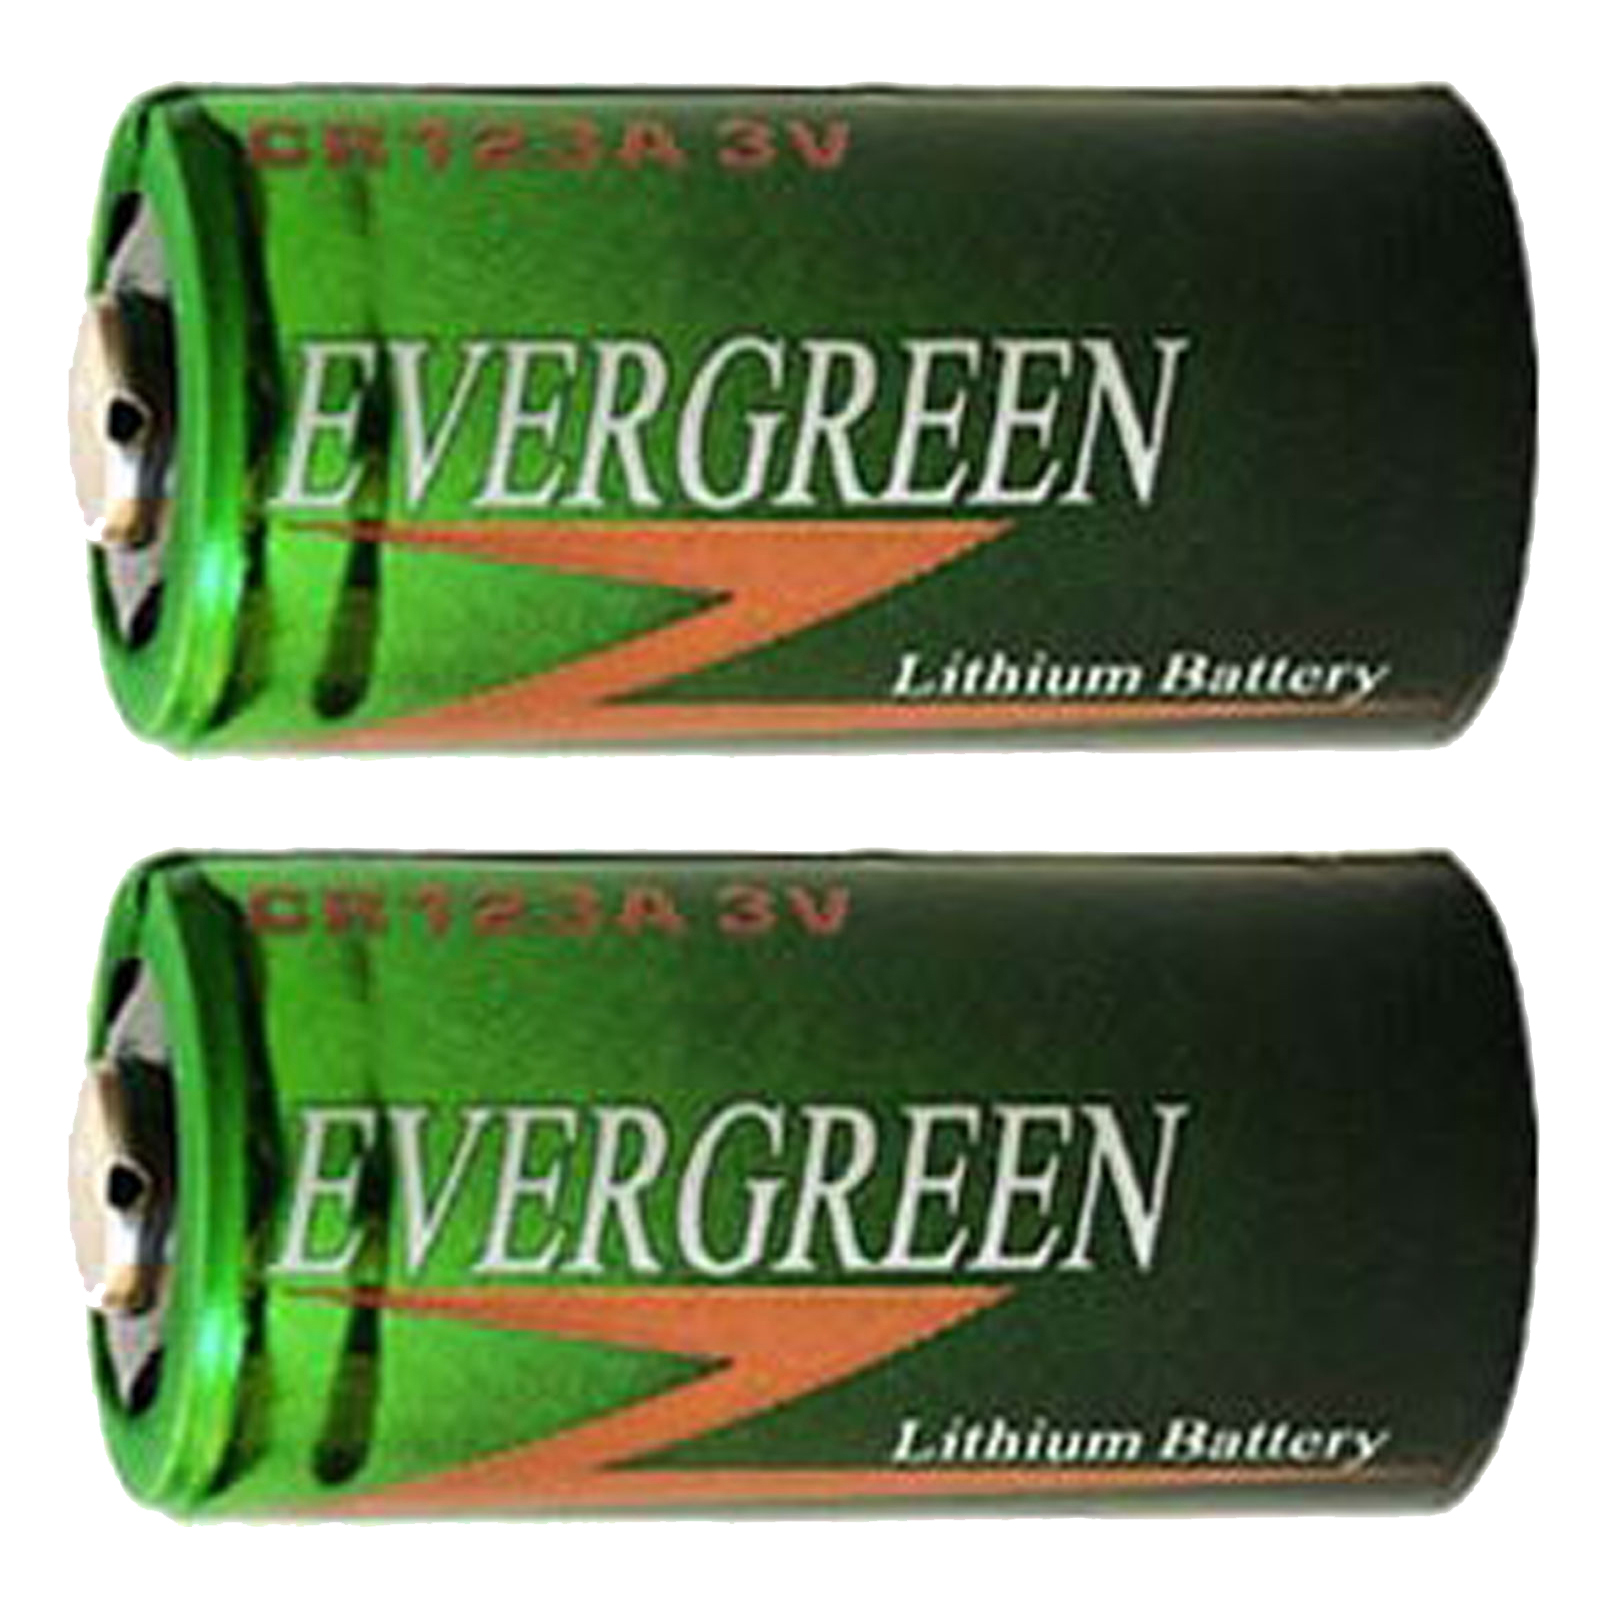 2pcs Evergreen CR123 2/3A 3V Lithium Batteries CR17335 CR17345 DL123 DL123A